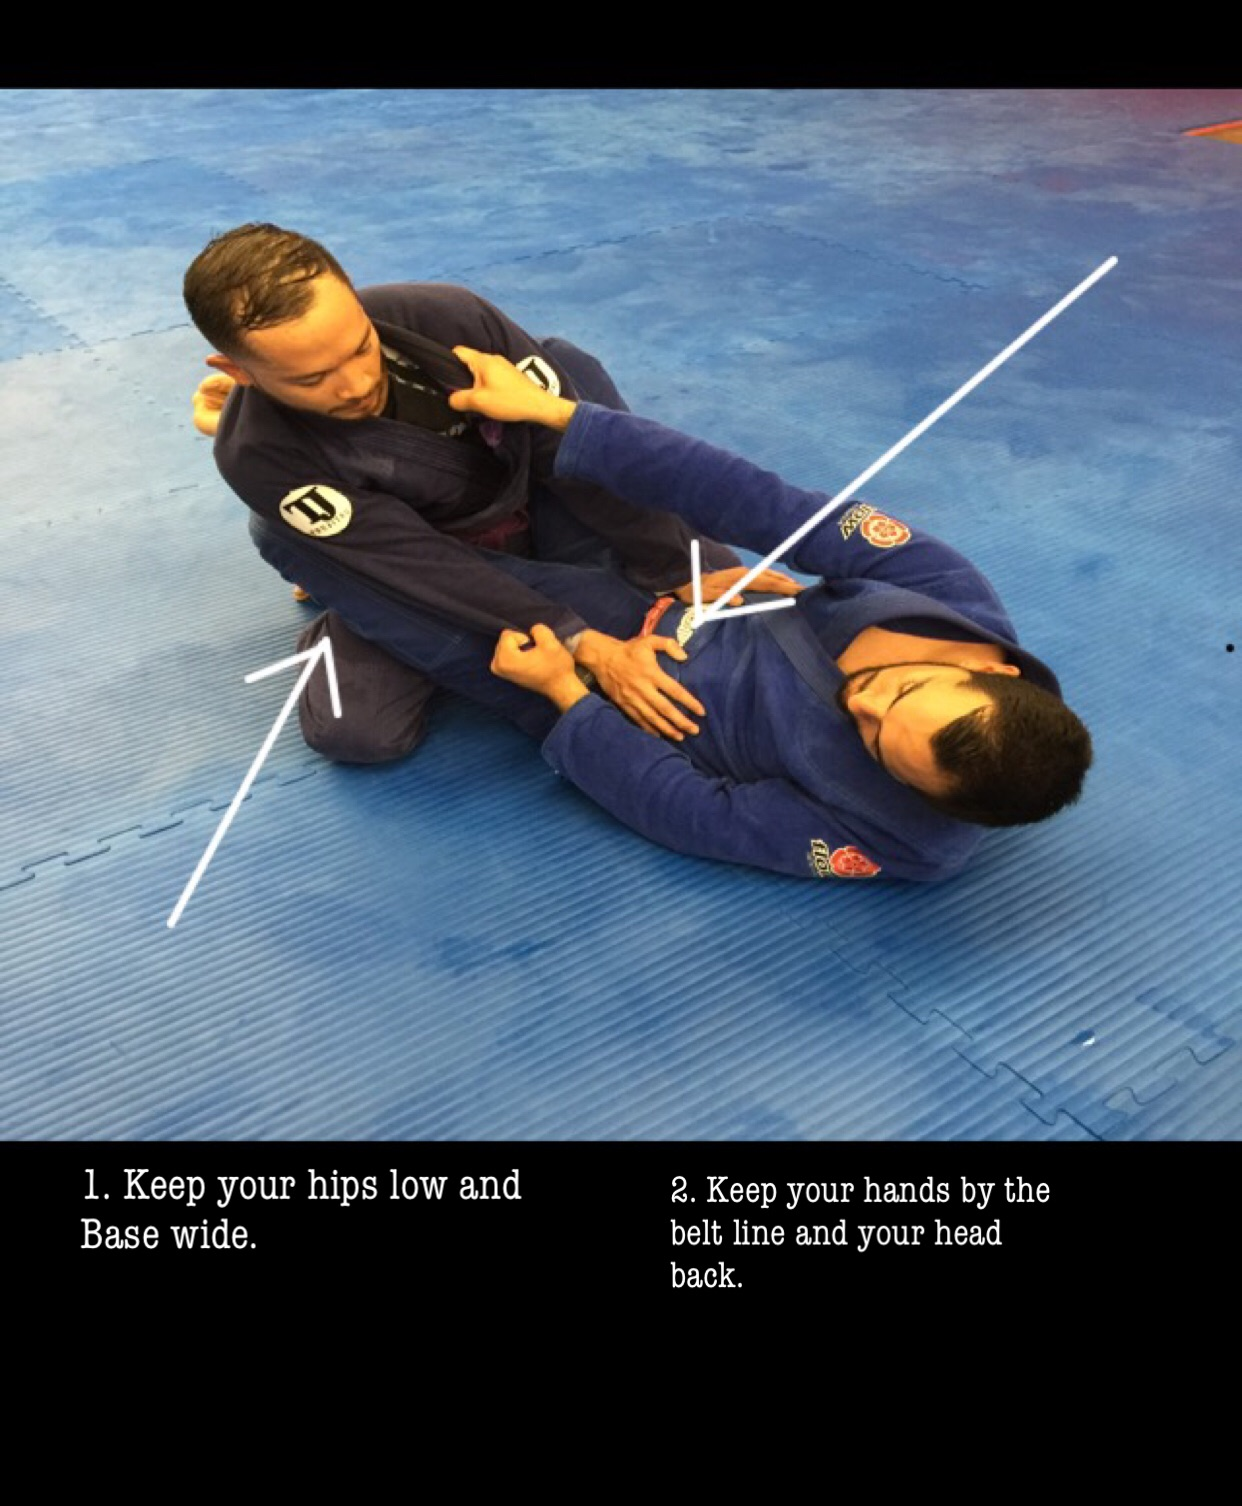 These 2 steps keep you out of range of your opponent's attacks, and exhausts their legs.